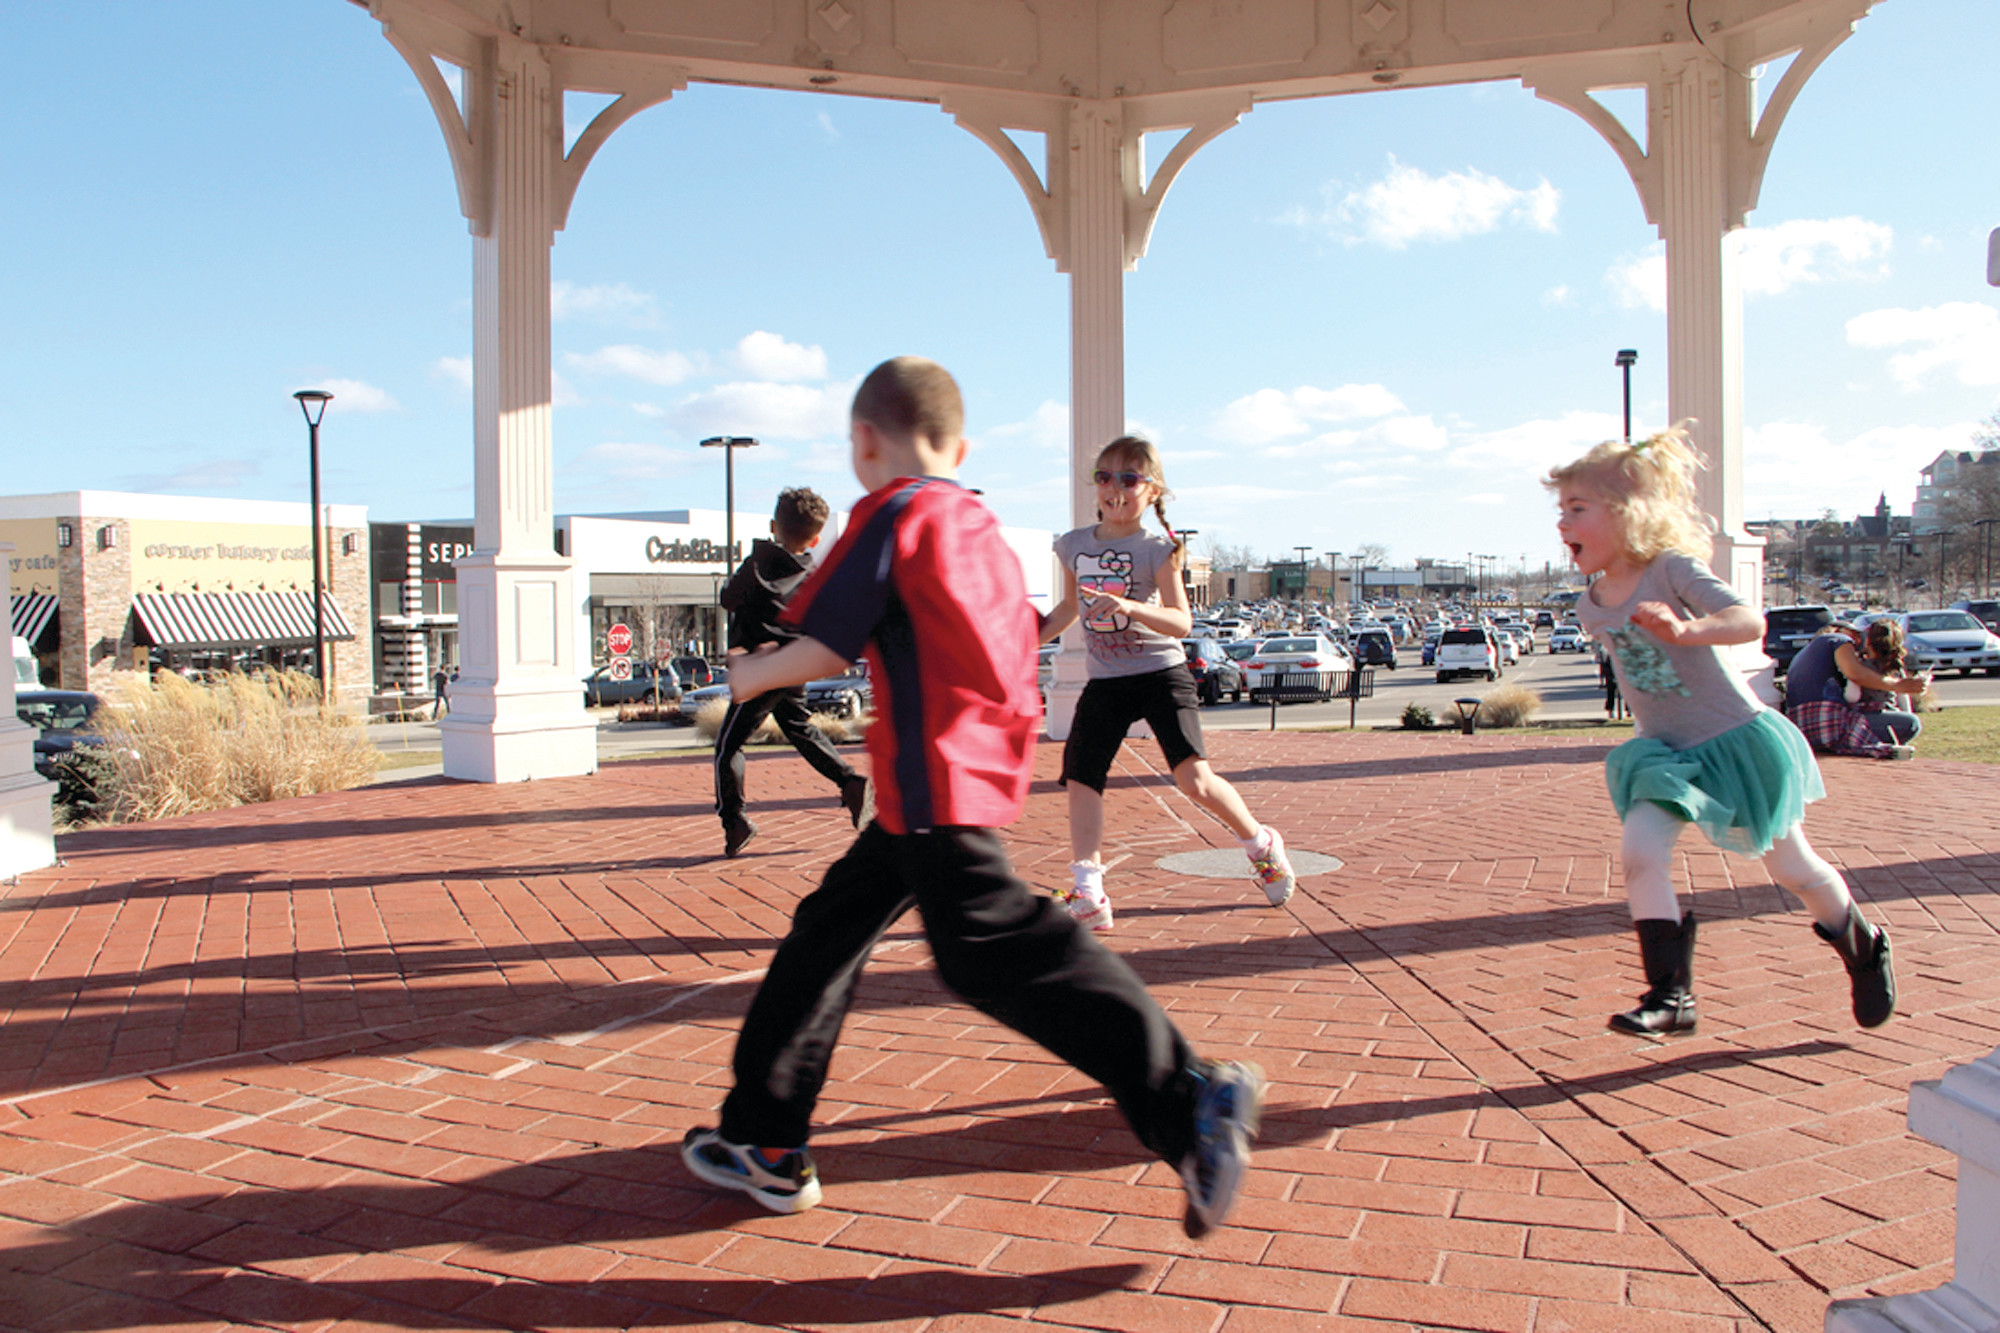 MAKING MOVES: Children play in the Gazebo at Garden City Center in this 2017 file photo. The shopping center has been sold to a Massachusetts developer for $181 million.